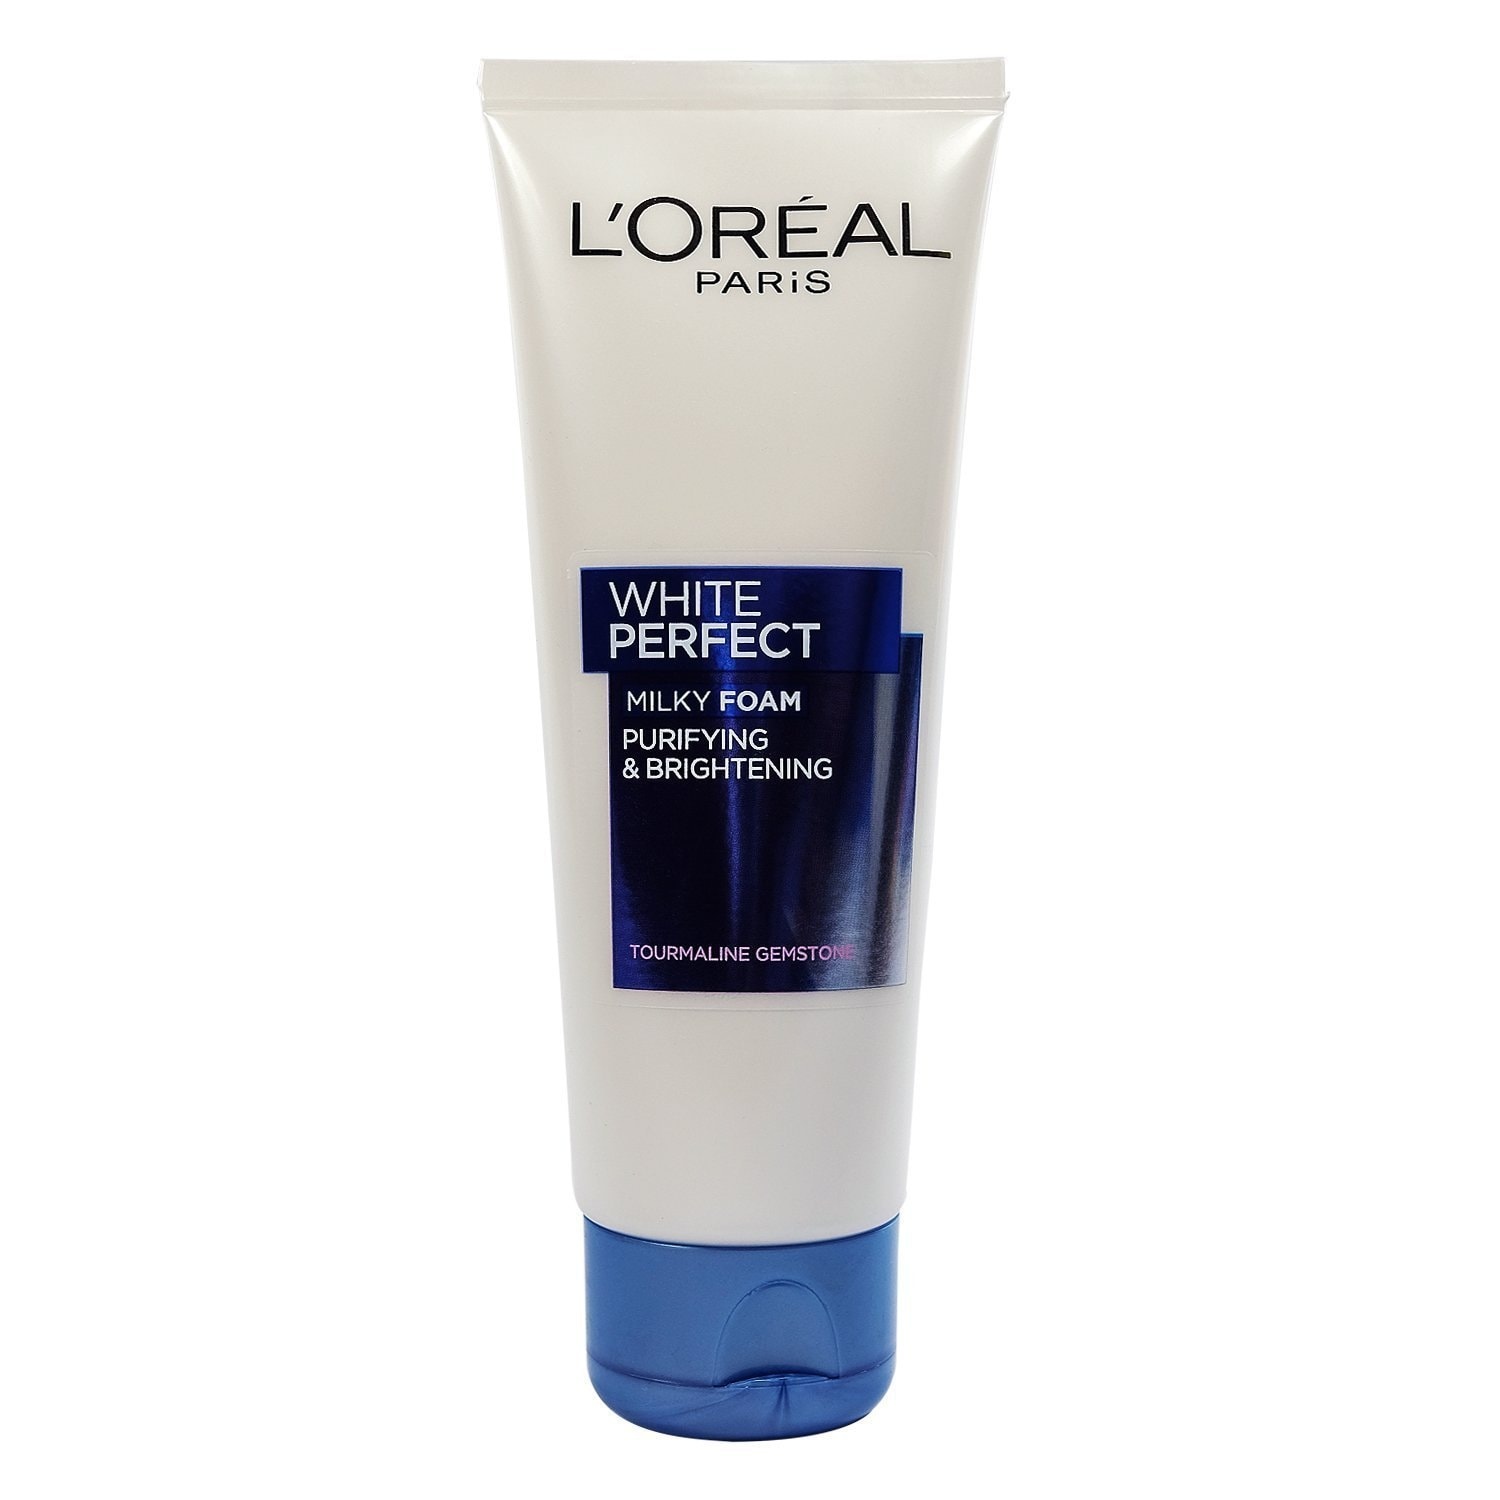 Loreal Face Wash And Cleanser - Buy Loreal Face Wash And Cleanser online in India